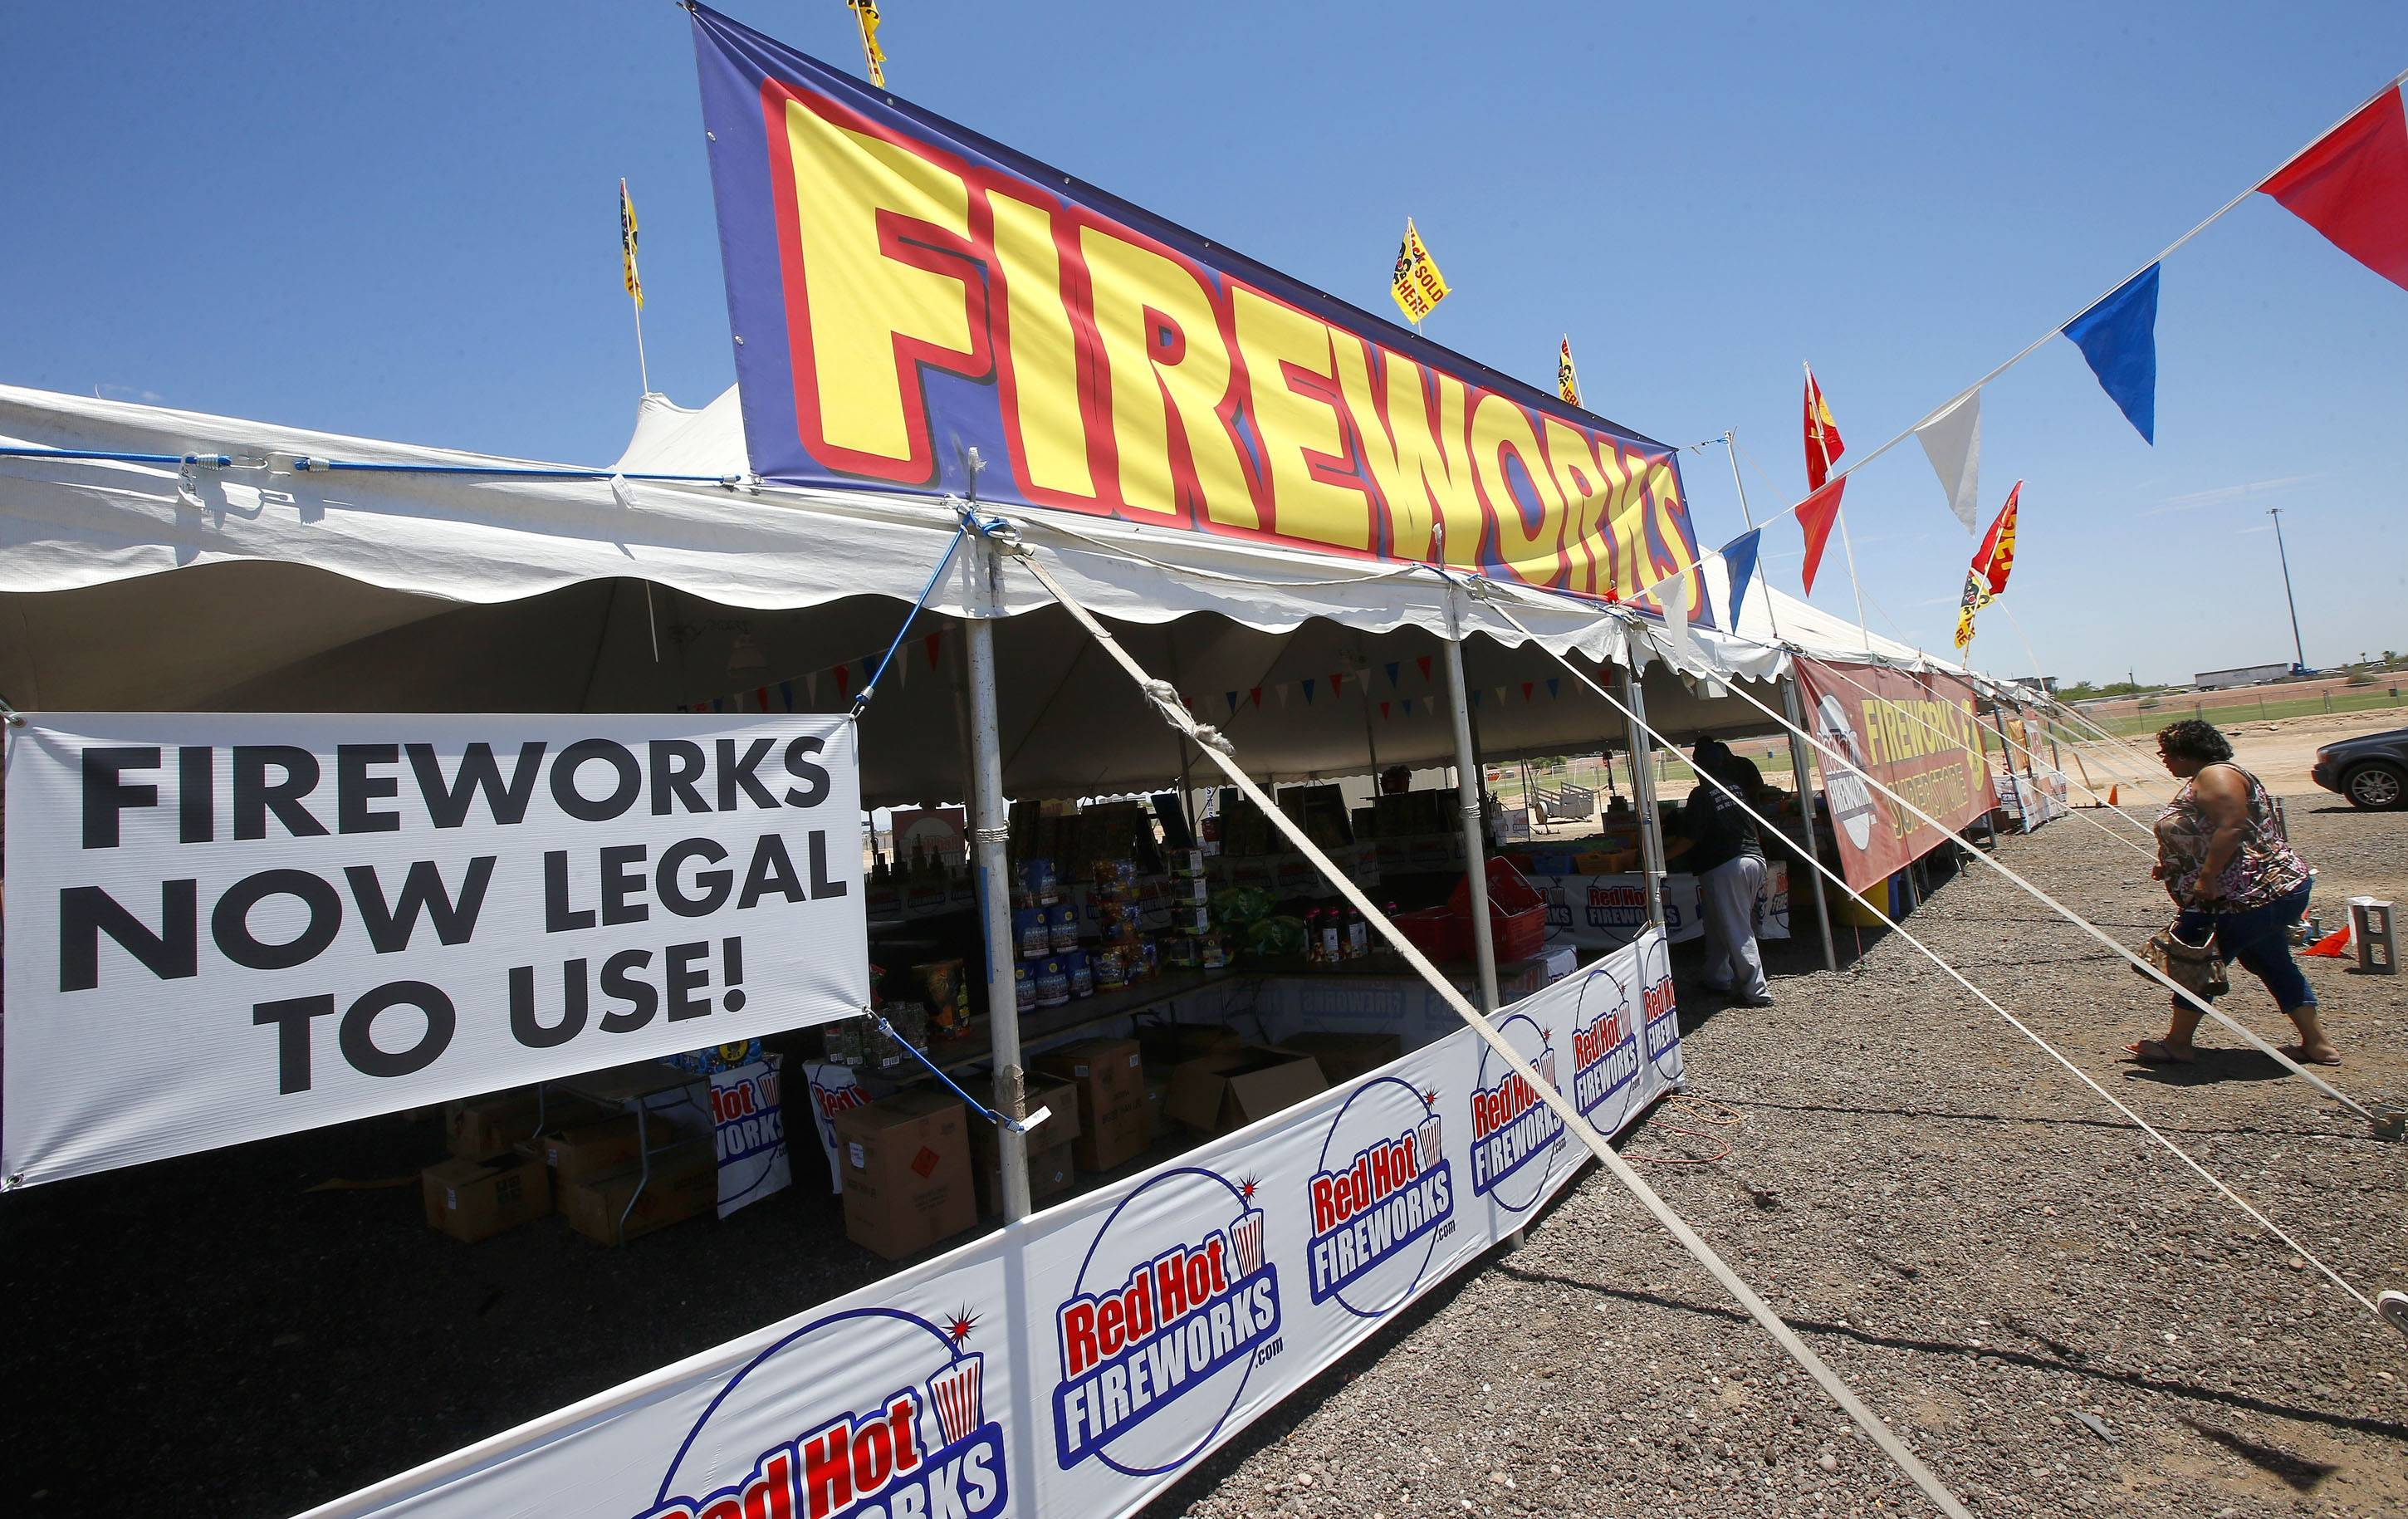 Customers walk into a Red Hot Fireworks tent Wednesday in Phoenix. Although Phoenix has gone a full 120 days without any measurable precipitation there has not been any serious effort in the drought-stricken states to restrict fireworks.  Arizona actually loosened its restrictions this year and allowed residents of the two most populated cities to set off fireworks around Independence Day.